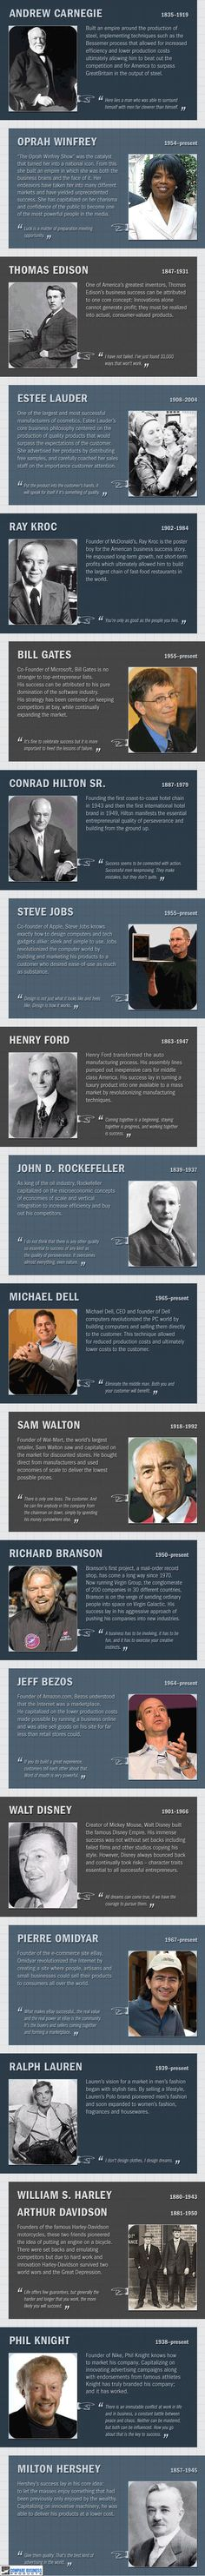 Top Entrepreneurs of the Last 100 Years